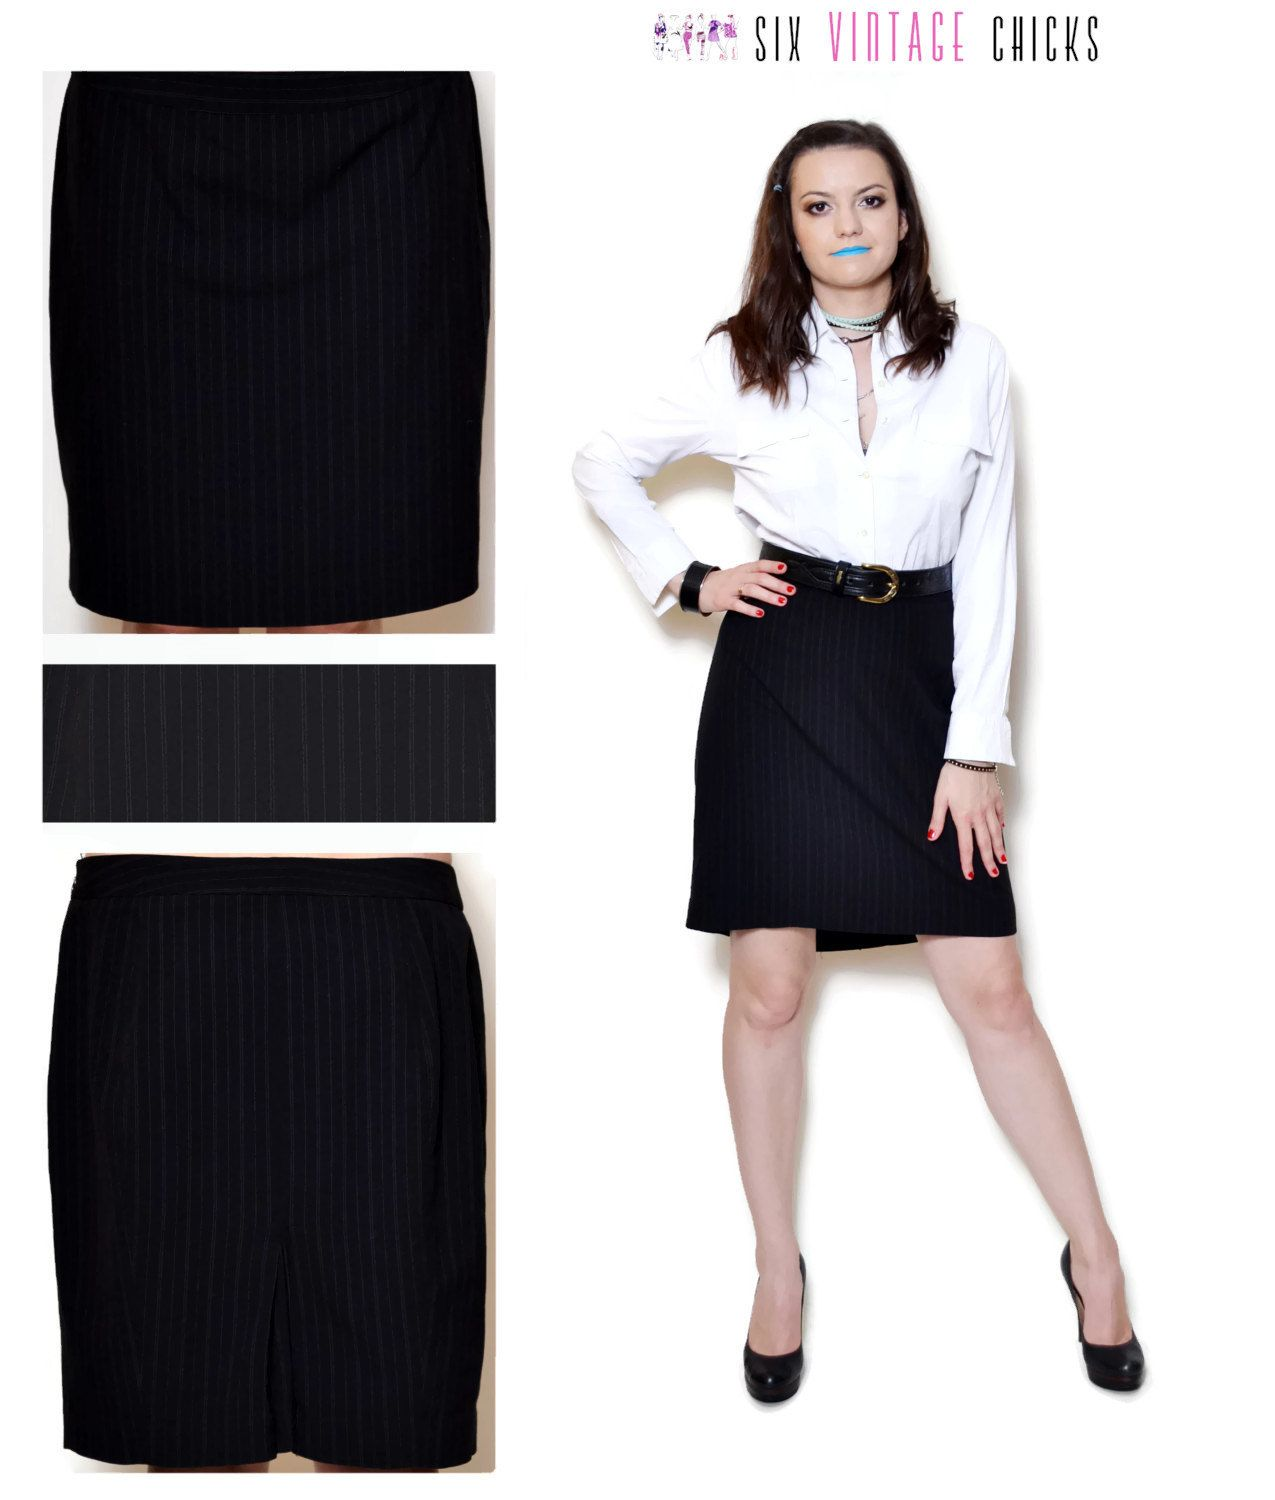 80438b4e8 Pencil Skirt Vintage high waisted skirt evening women clothing office  clothes black mini skirt 90s black and white stripe L by SixVintageChicks  on Etsy